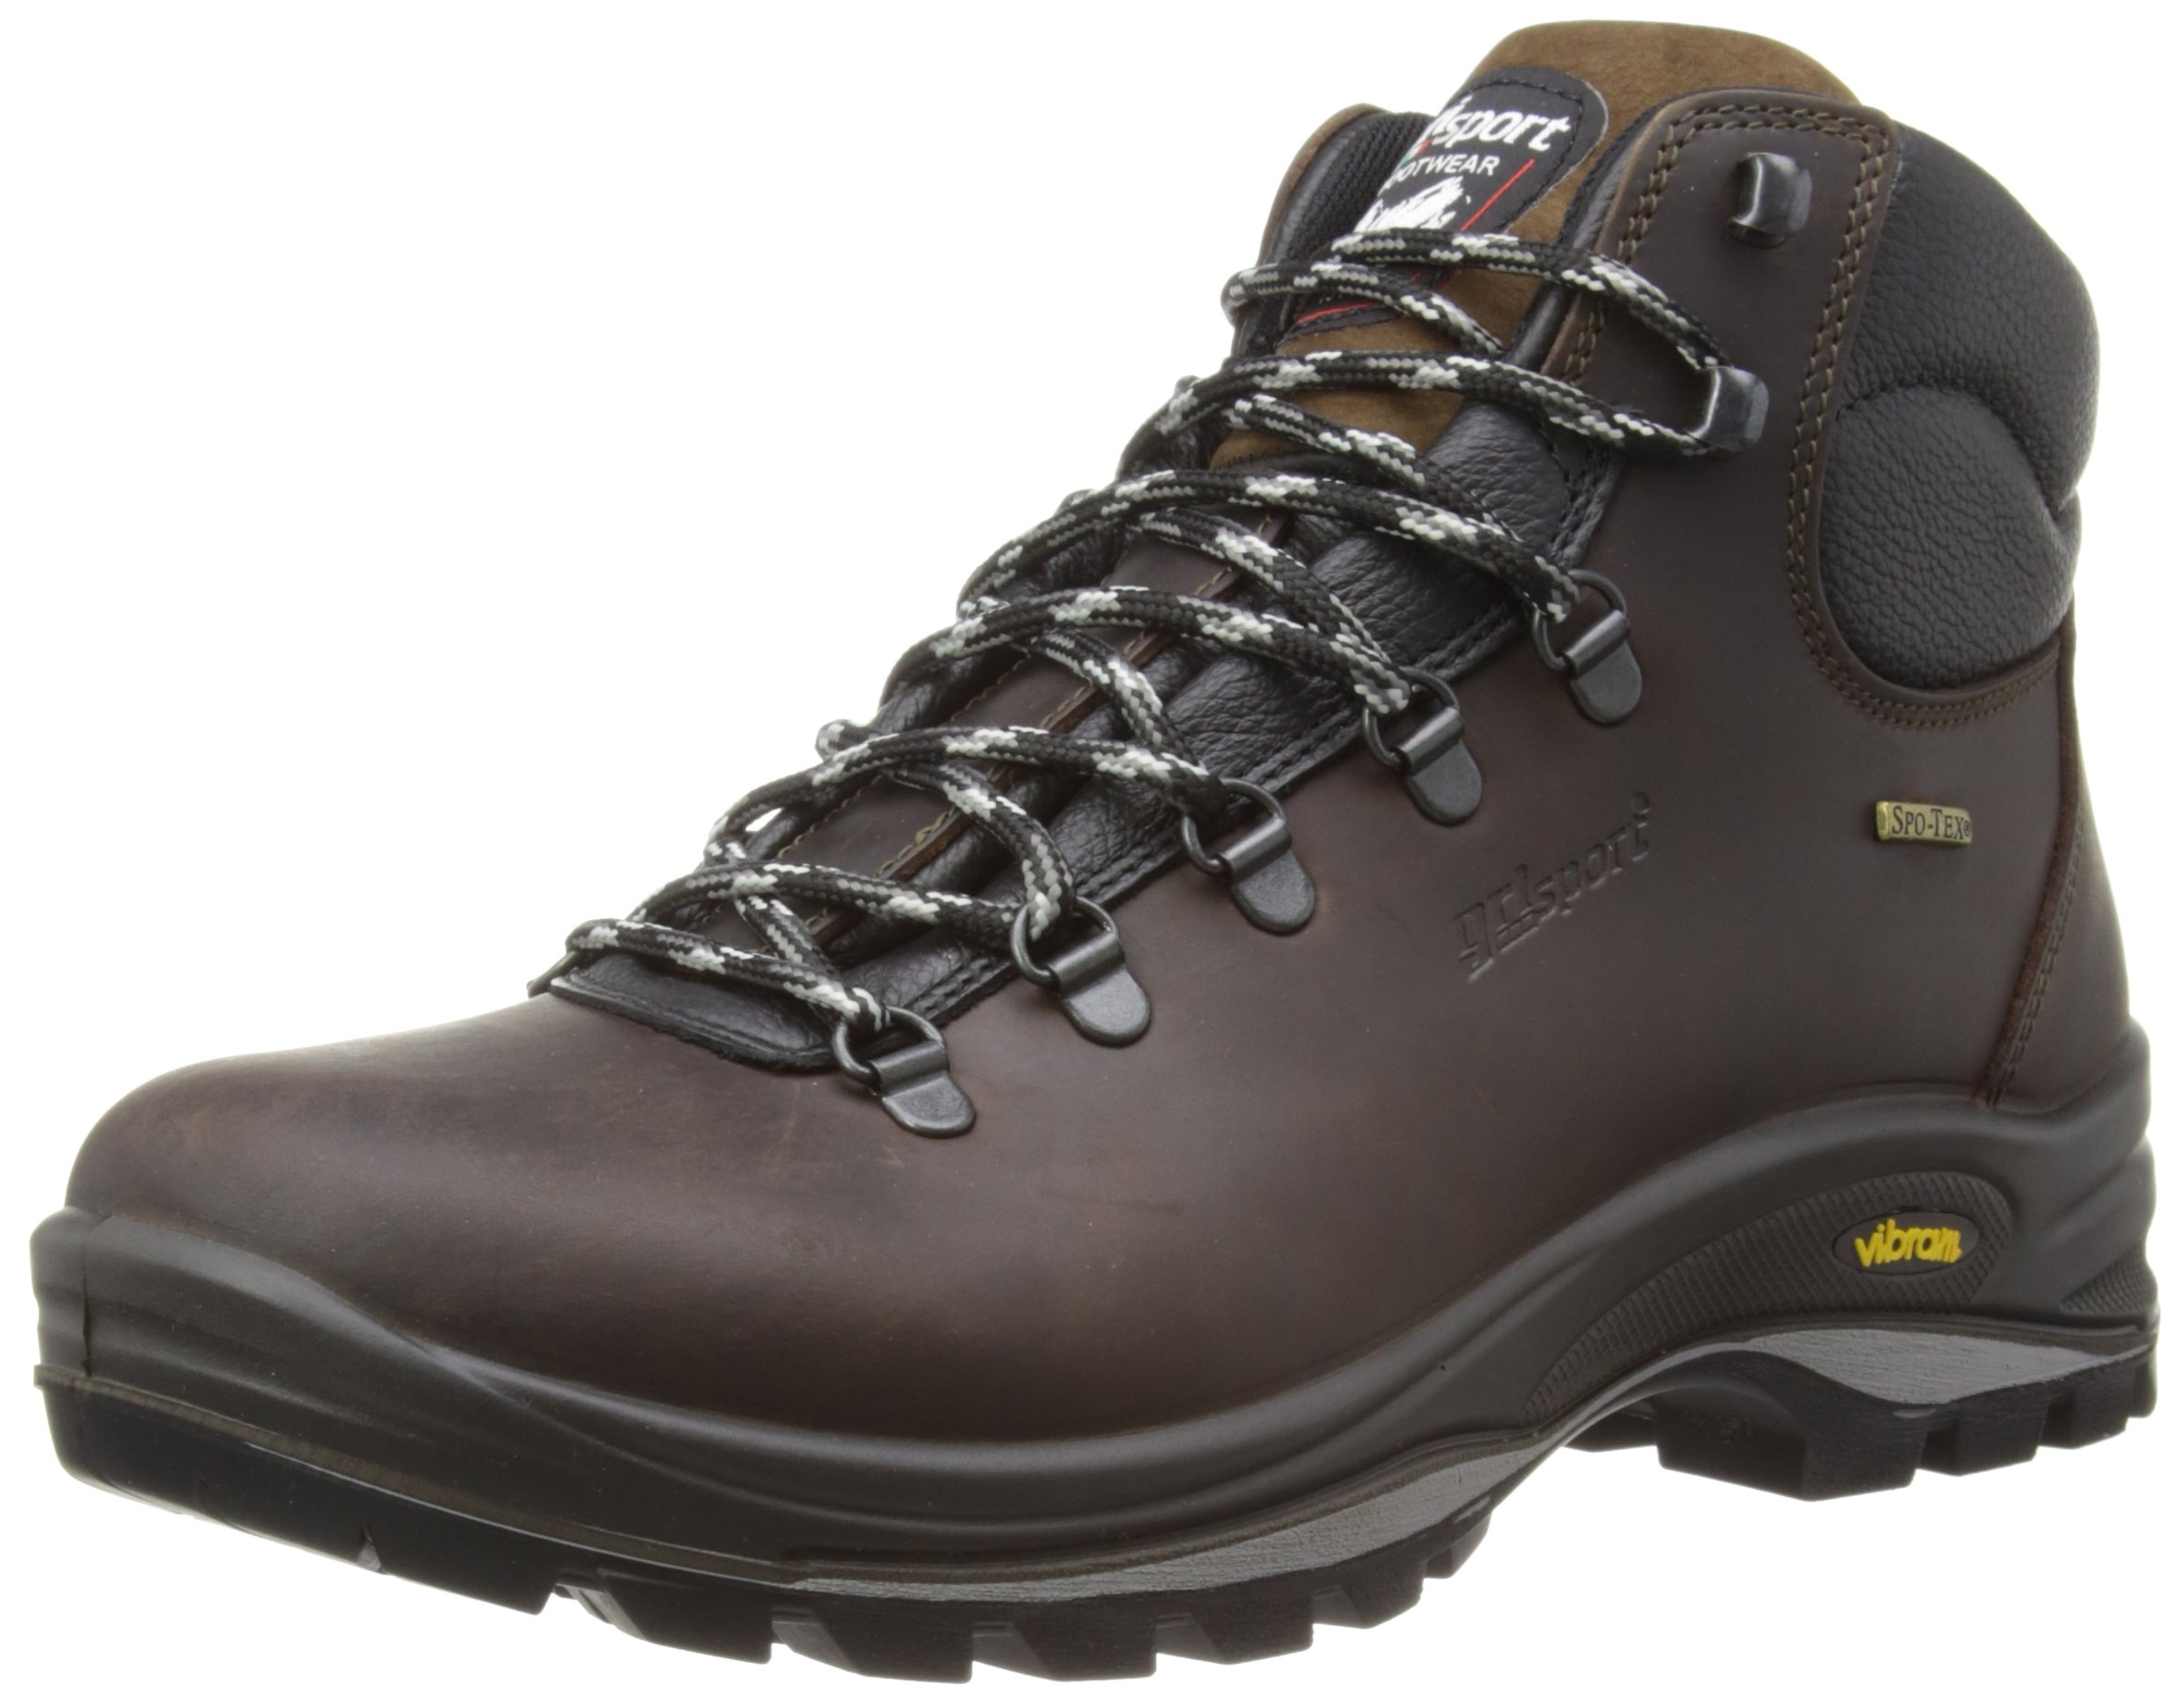 Grisport Unisex-Adult Fuse Trekking and Hiking Boots 1